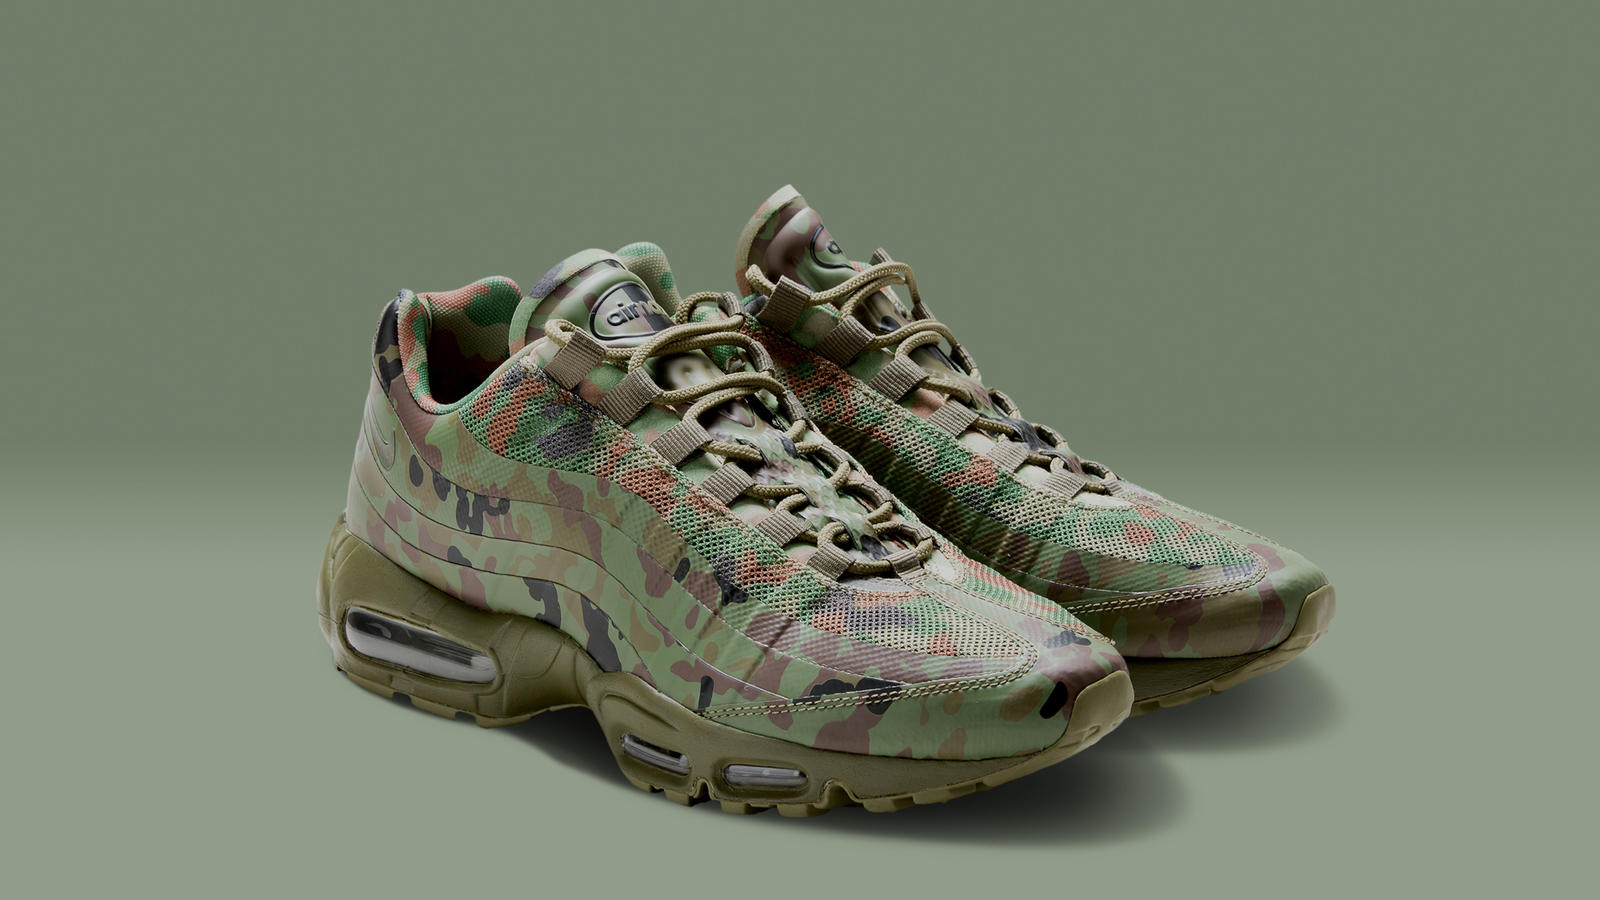 photos officielles 5bc36 59c00 Revealed: the Nike Air Max Camo Collection - Nike News